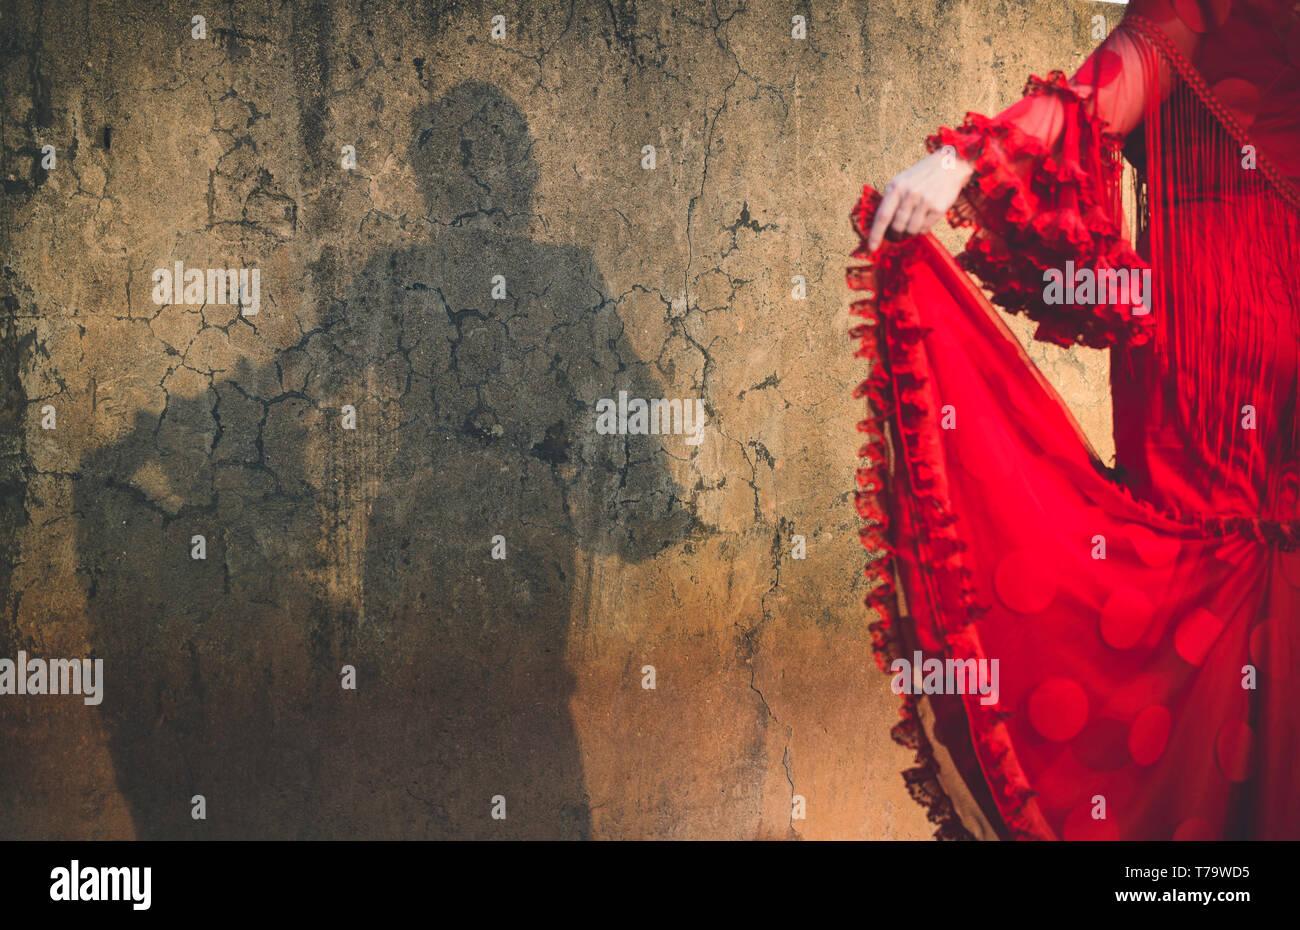 Shadow of woman dressed in flamenco dress on cracked wall, focus on wall shadow and out of focus dress - Stock Image